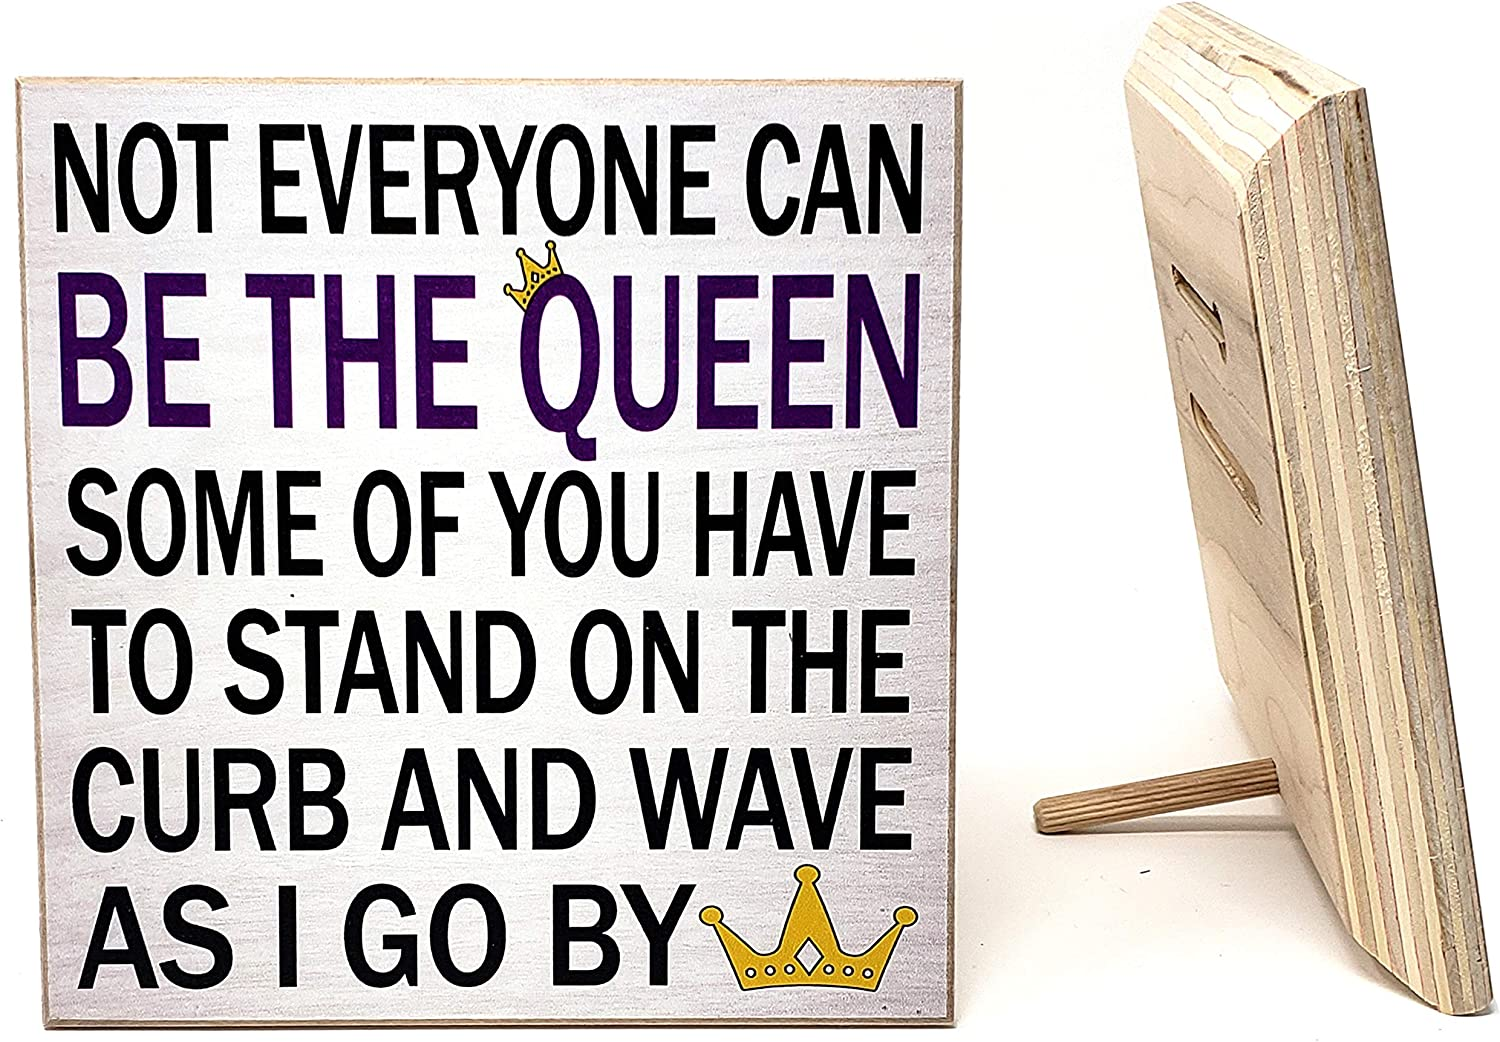 JennyGems Not Everyone Can Be The Queen Some of You Have to Stand on The Curb and Wave as I Go by | Sassy Wall Art | Funny Sign | Office Desk Decor | Made in USA